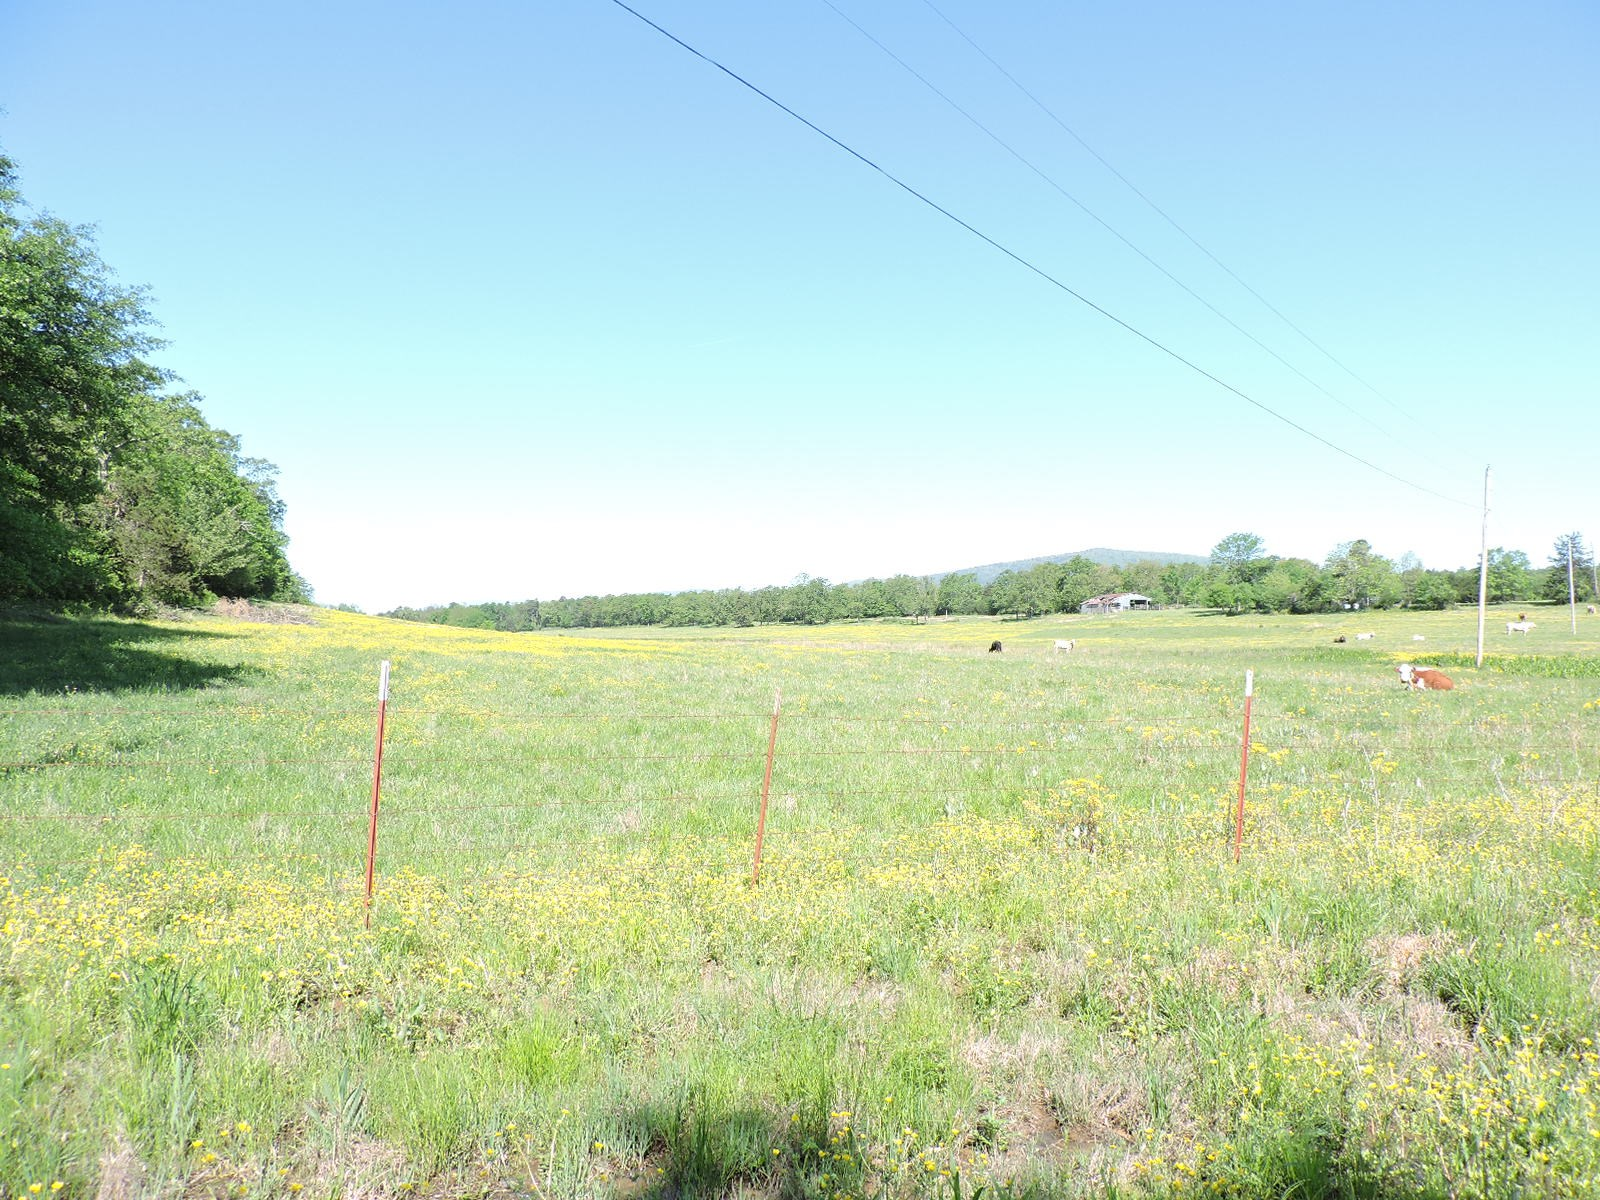 Prime Pasture Land For Cattle or Poultry Farm